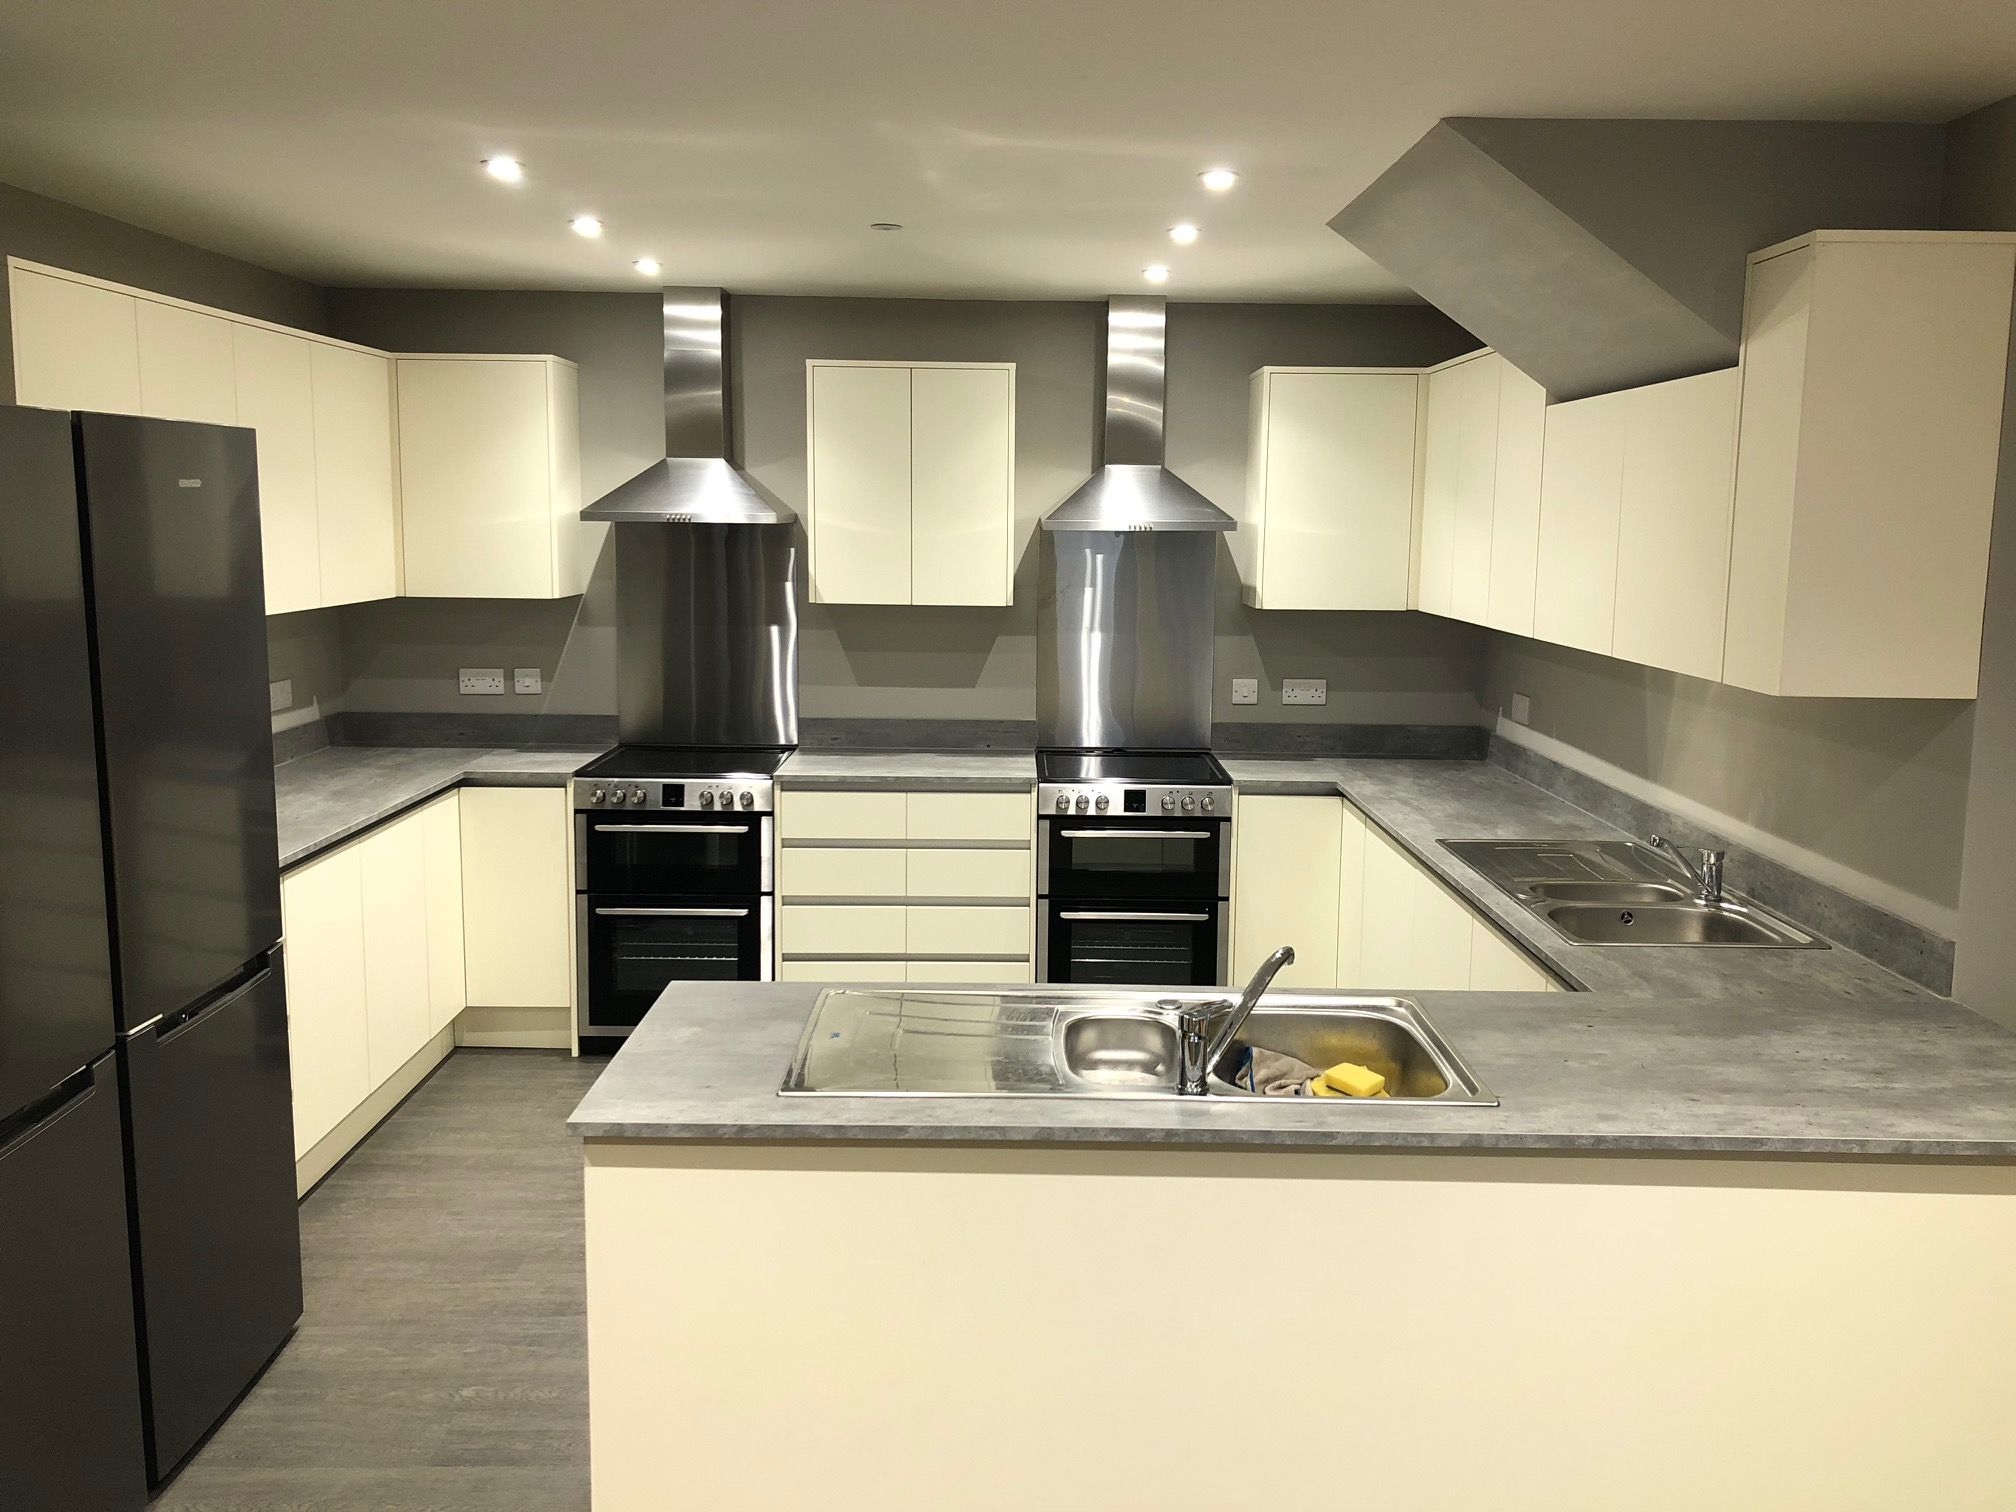 1 Bed Shared Flat/apartment To Rent - Photograph 4